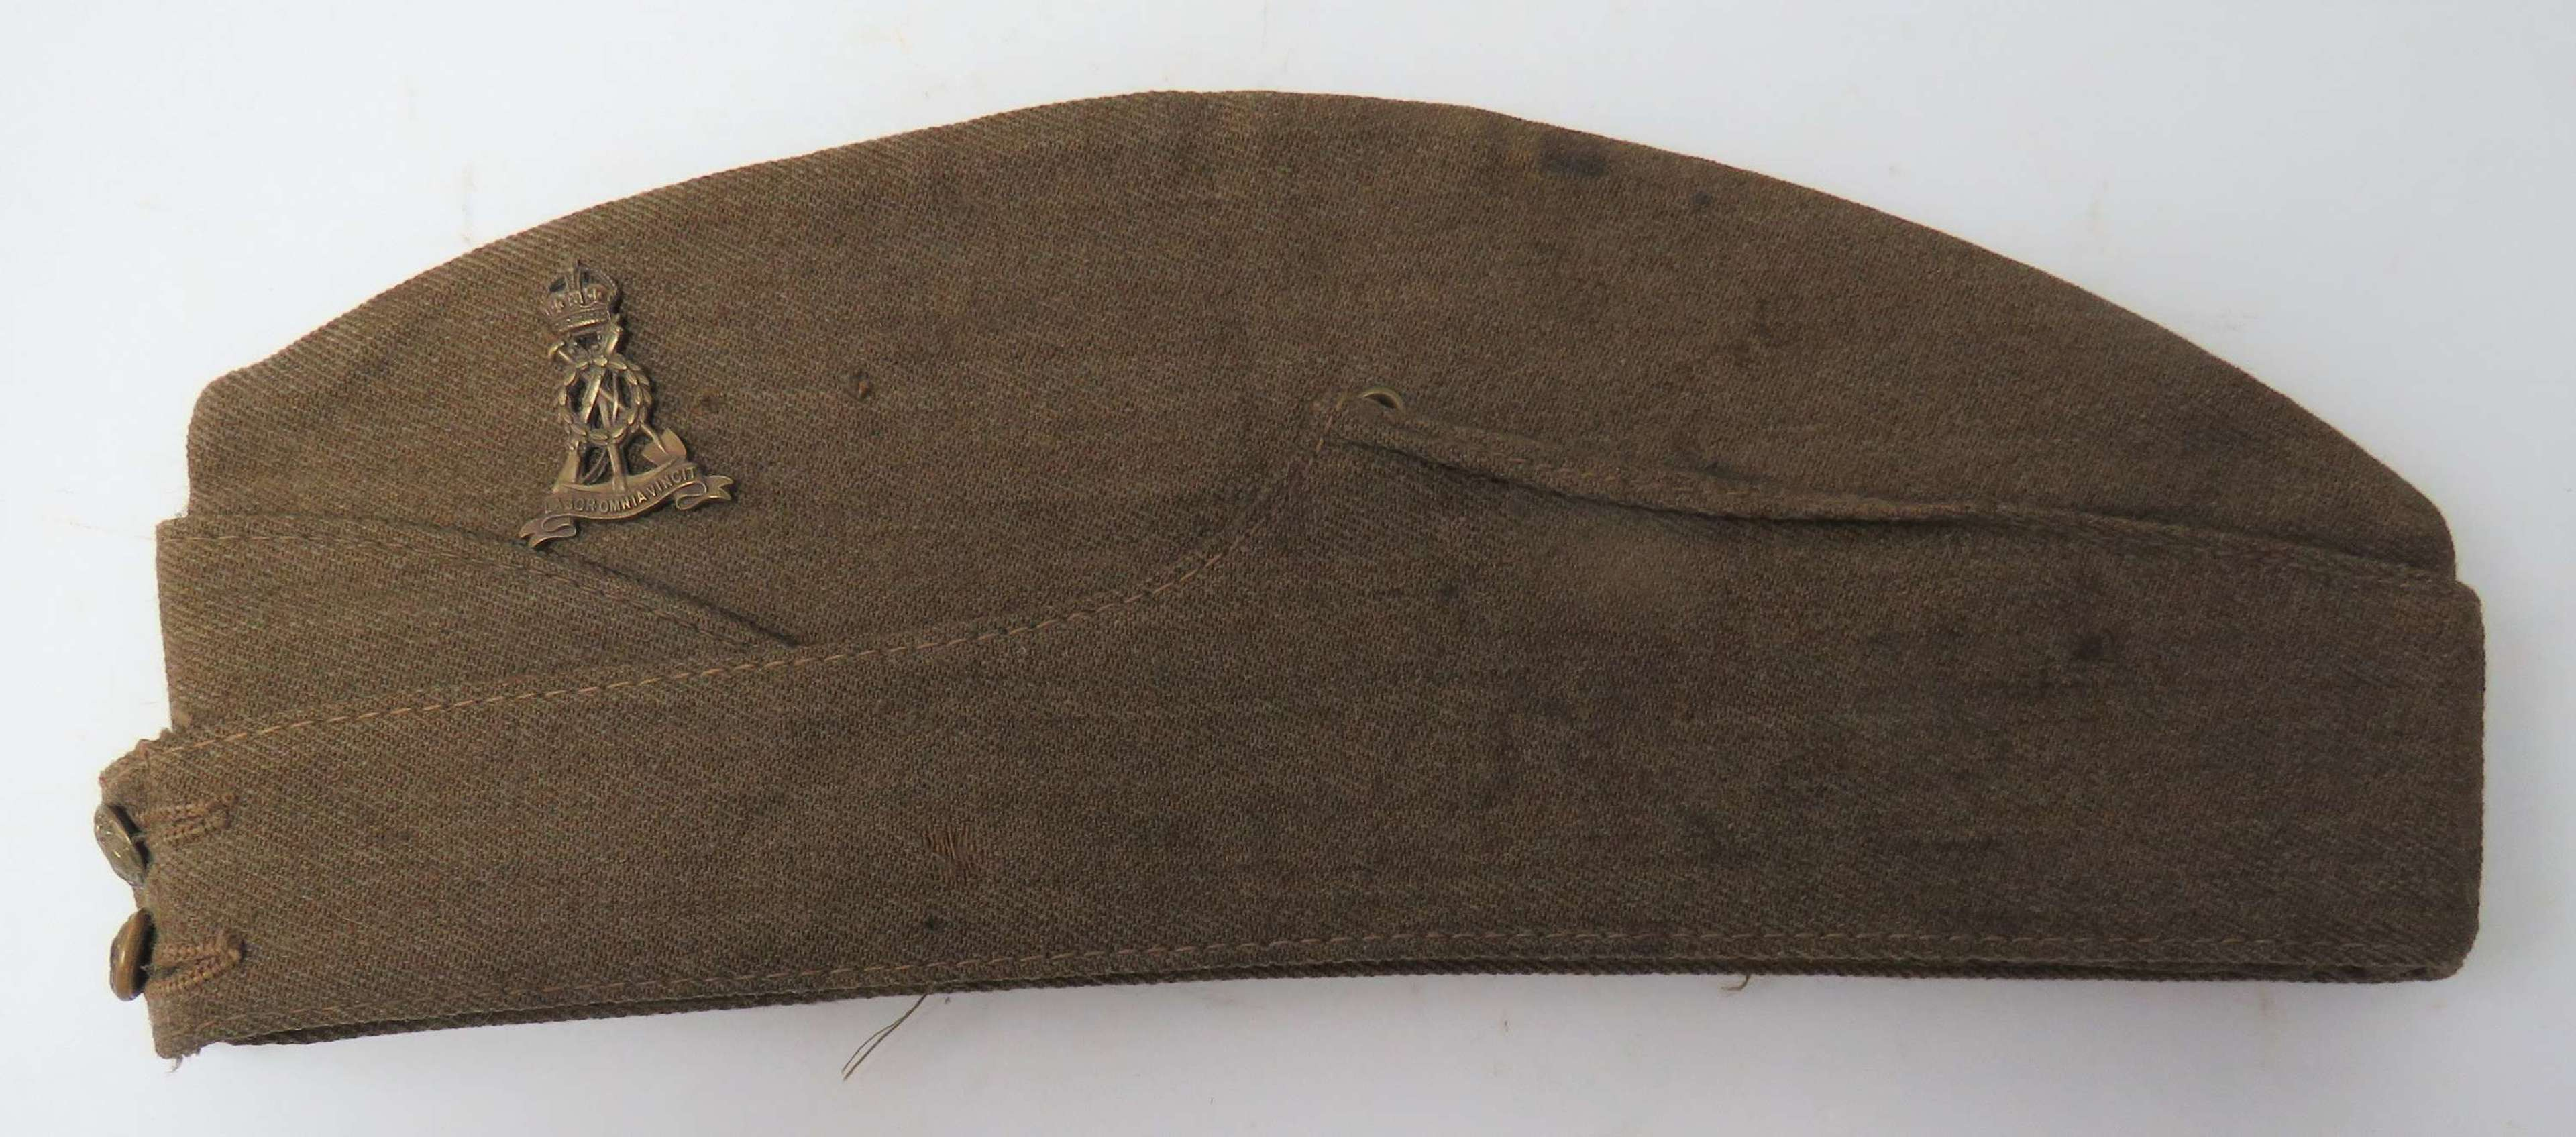 WW2 Pioneer Corps Other Ranks Field Service Cap